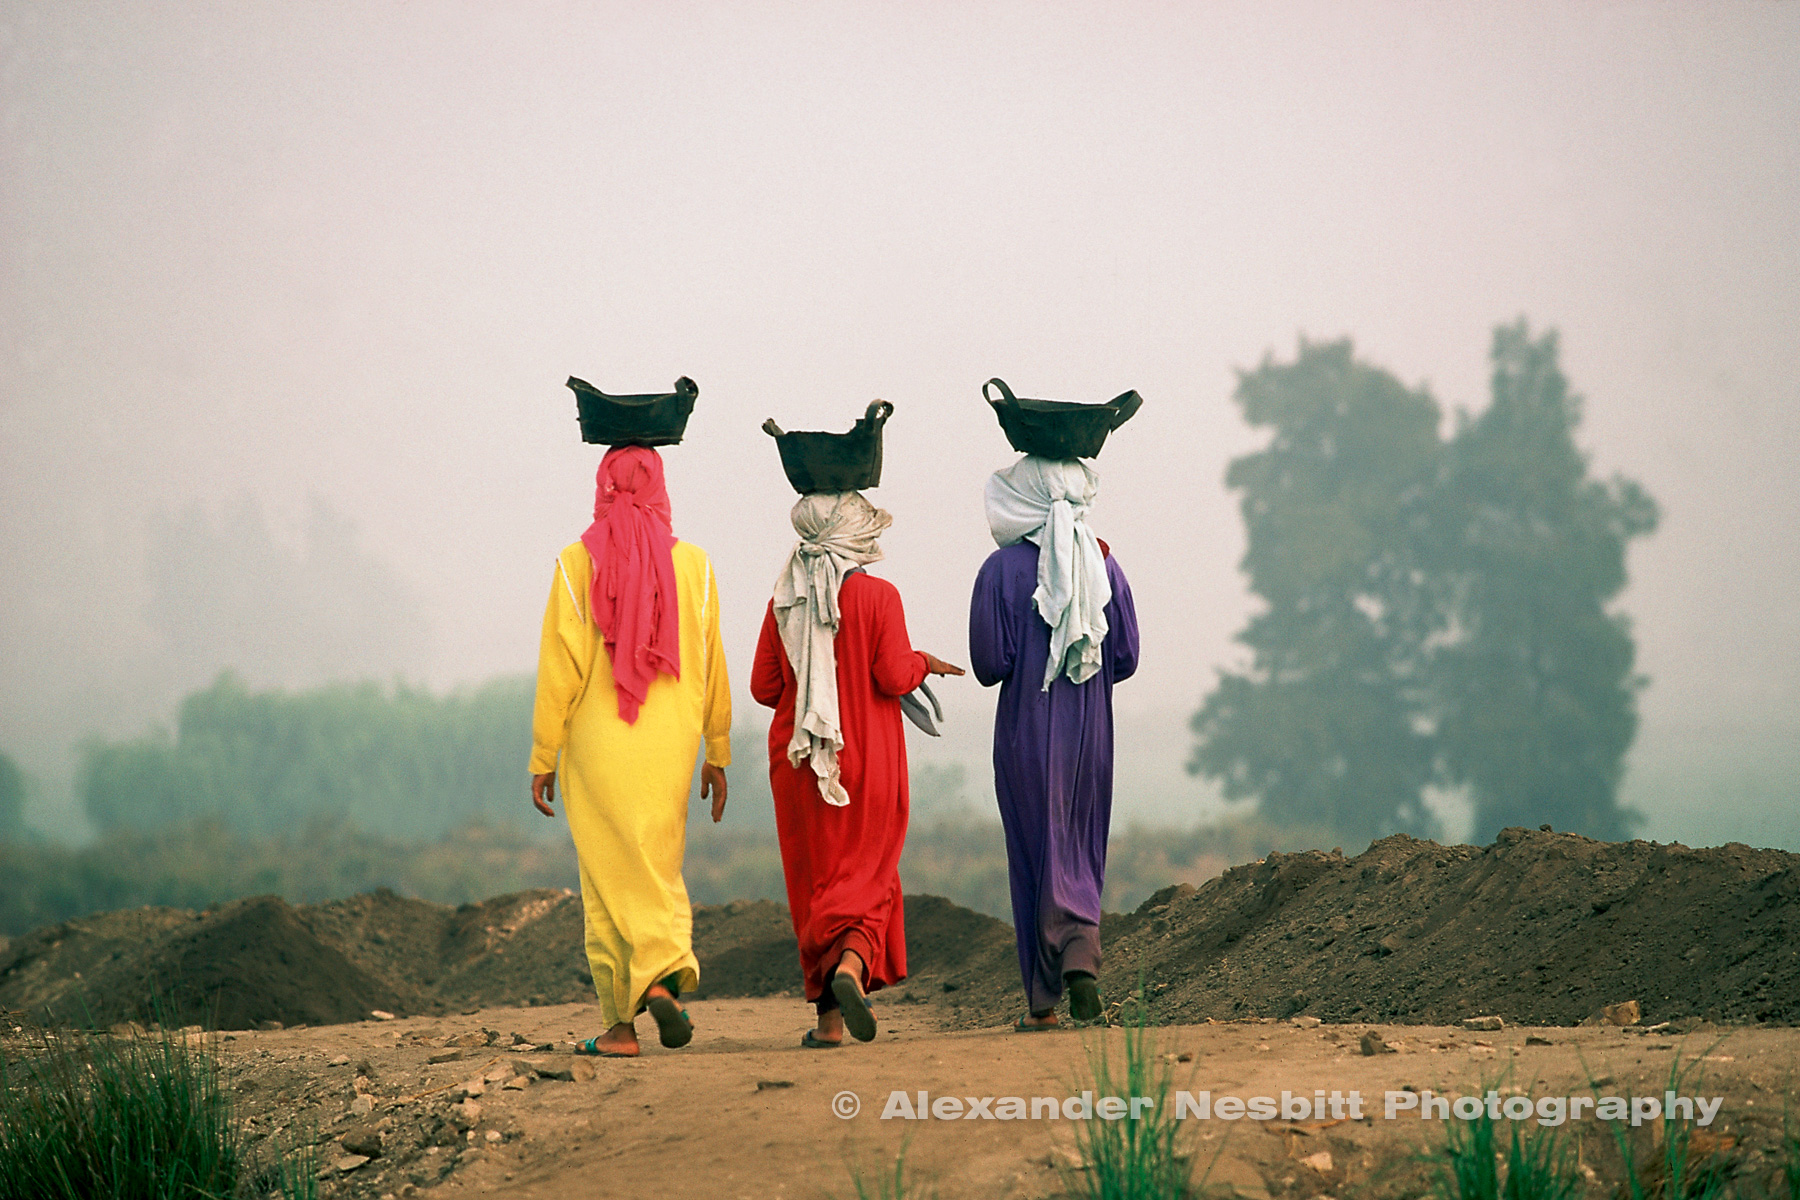 Egypt, Mendes 2000 - Three local girls in colorful dresses walk through the Mendes dig site while balancing baskets on their heads. The baskets are filled with earth from excavation at the dig site near Mansura in the Nile Delta. The bright yellow, red, and purple dresses are the girls work clothes.